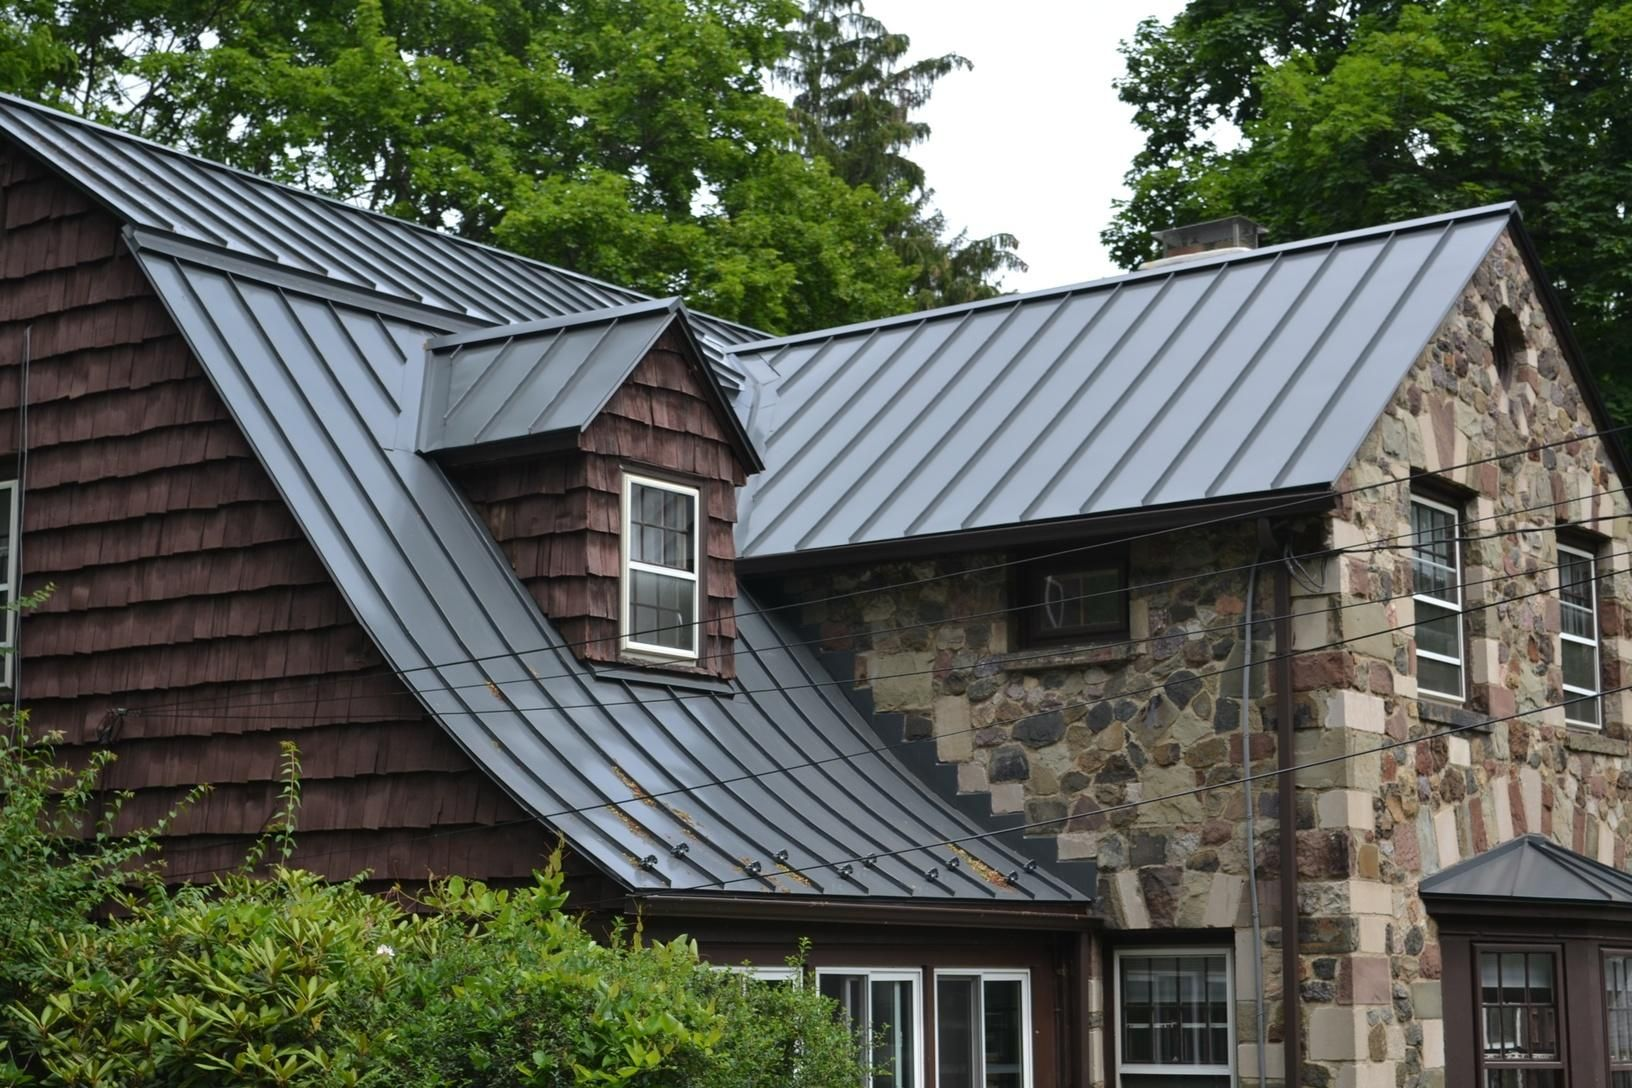 Roof Replacement Custom Standing Seam Metal Roofing In New Jersey Metal Roof Installation Maplewood N Metal Roof Installation Metal Roof Roof Installation